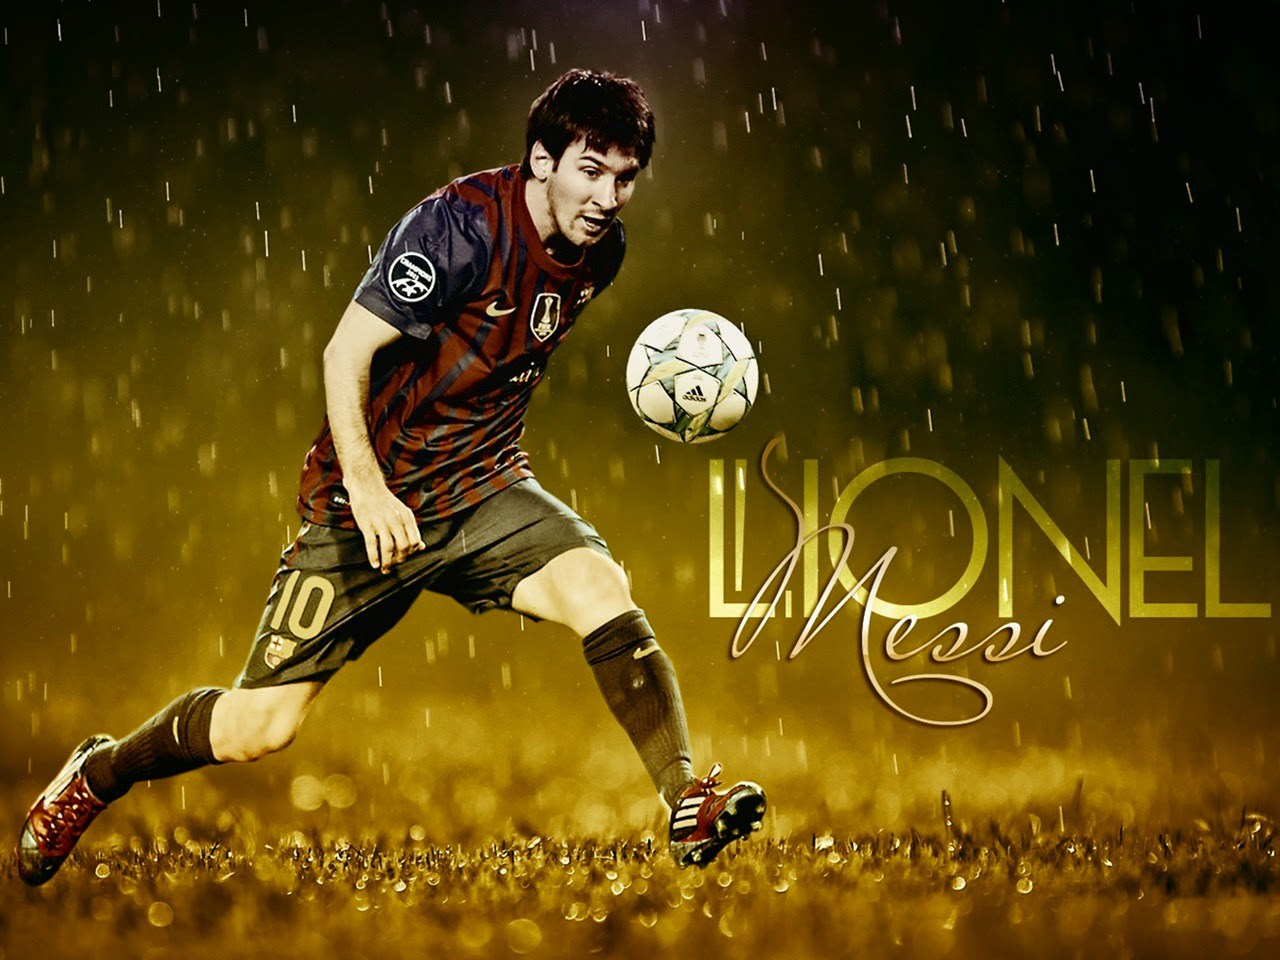 Leo Messi Wallpaper 2016 Pictures to Pin 1280x960